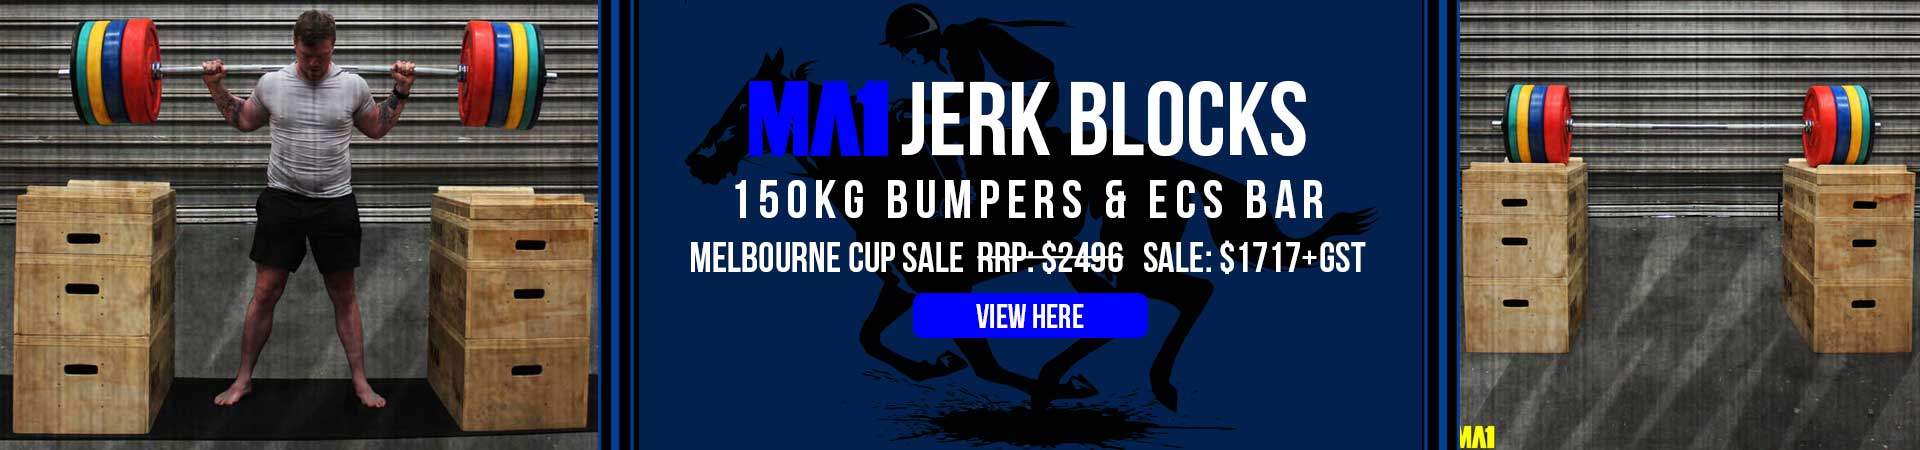 MA1 Melb Cup Jerk Block Sale